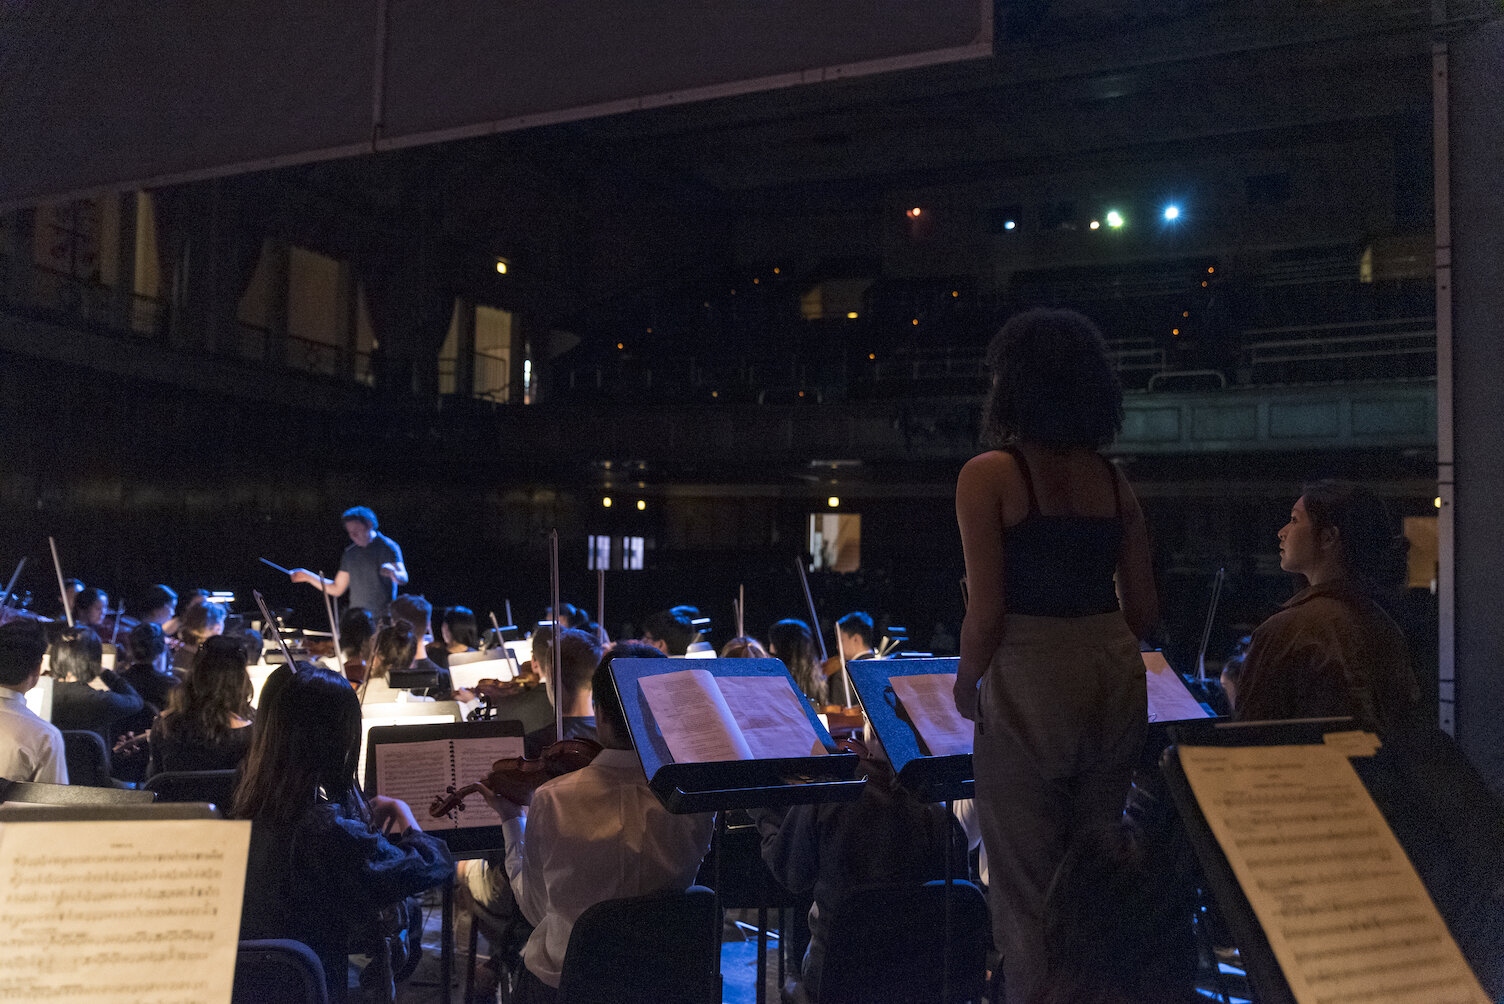 """Gustavo Dudamel rehearses Mendelssohn's """"A Midsummer Night's Dream"""" with the Princeton University Orchestra and Glee Club and student narrators from the Lewis Center for the Arts' Program in Theater (Victoria Davidjohn '19, Jacy Duan '21, and Kathryn McReynolds '20) before their final concert at the Patriots Theater at the War Memorial in Trenton, NJ, April 2019."""